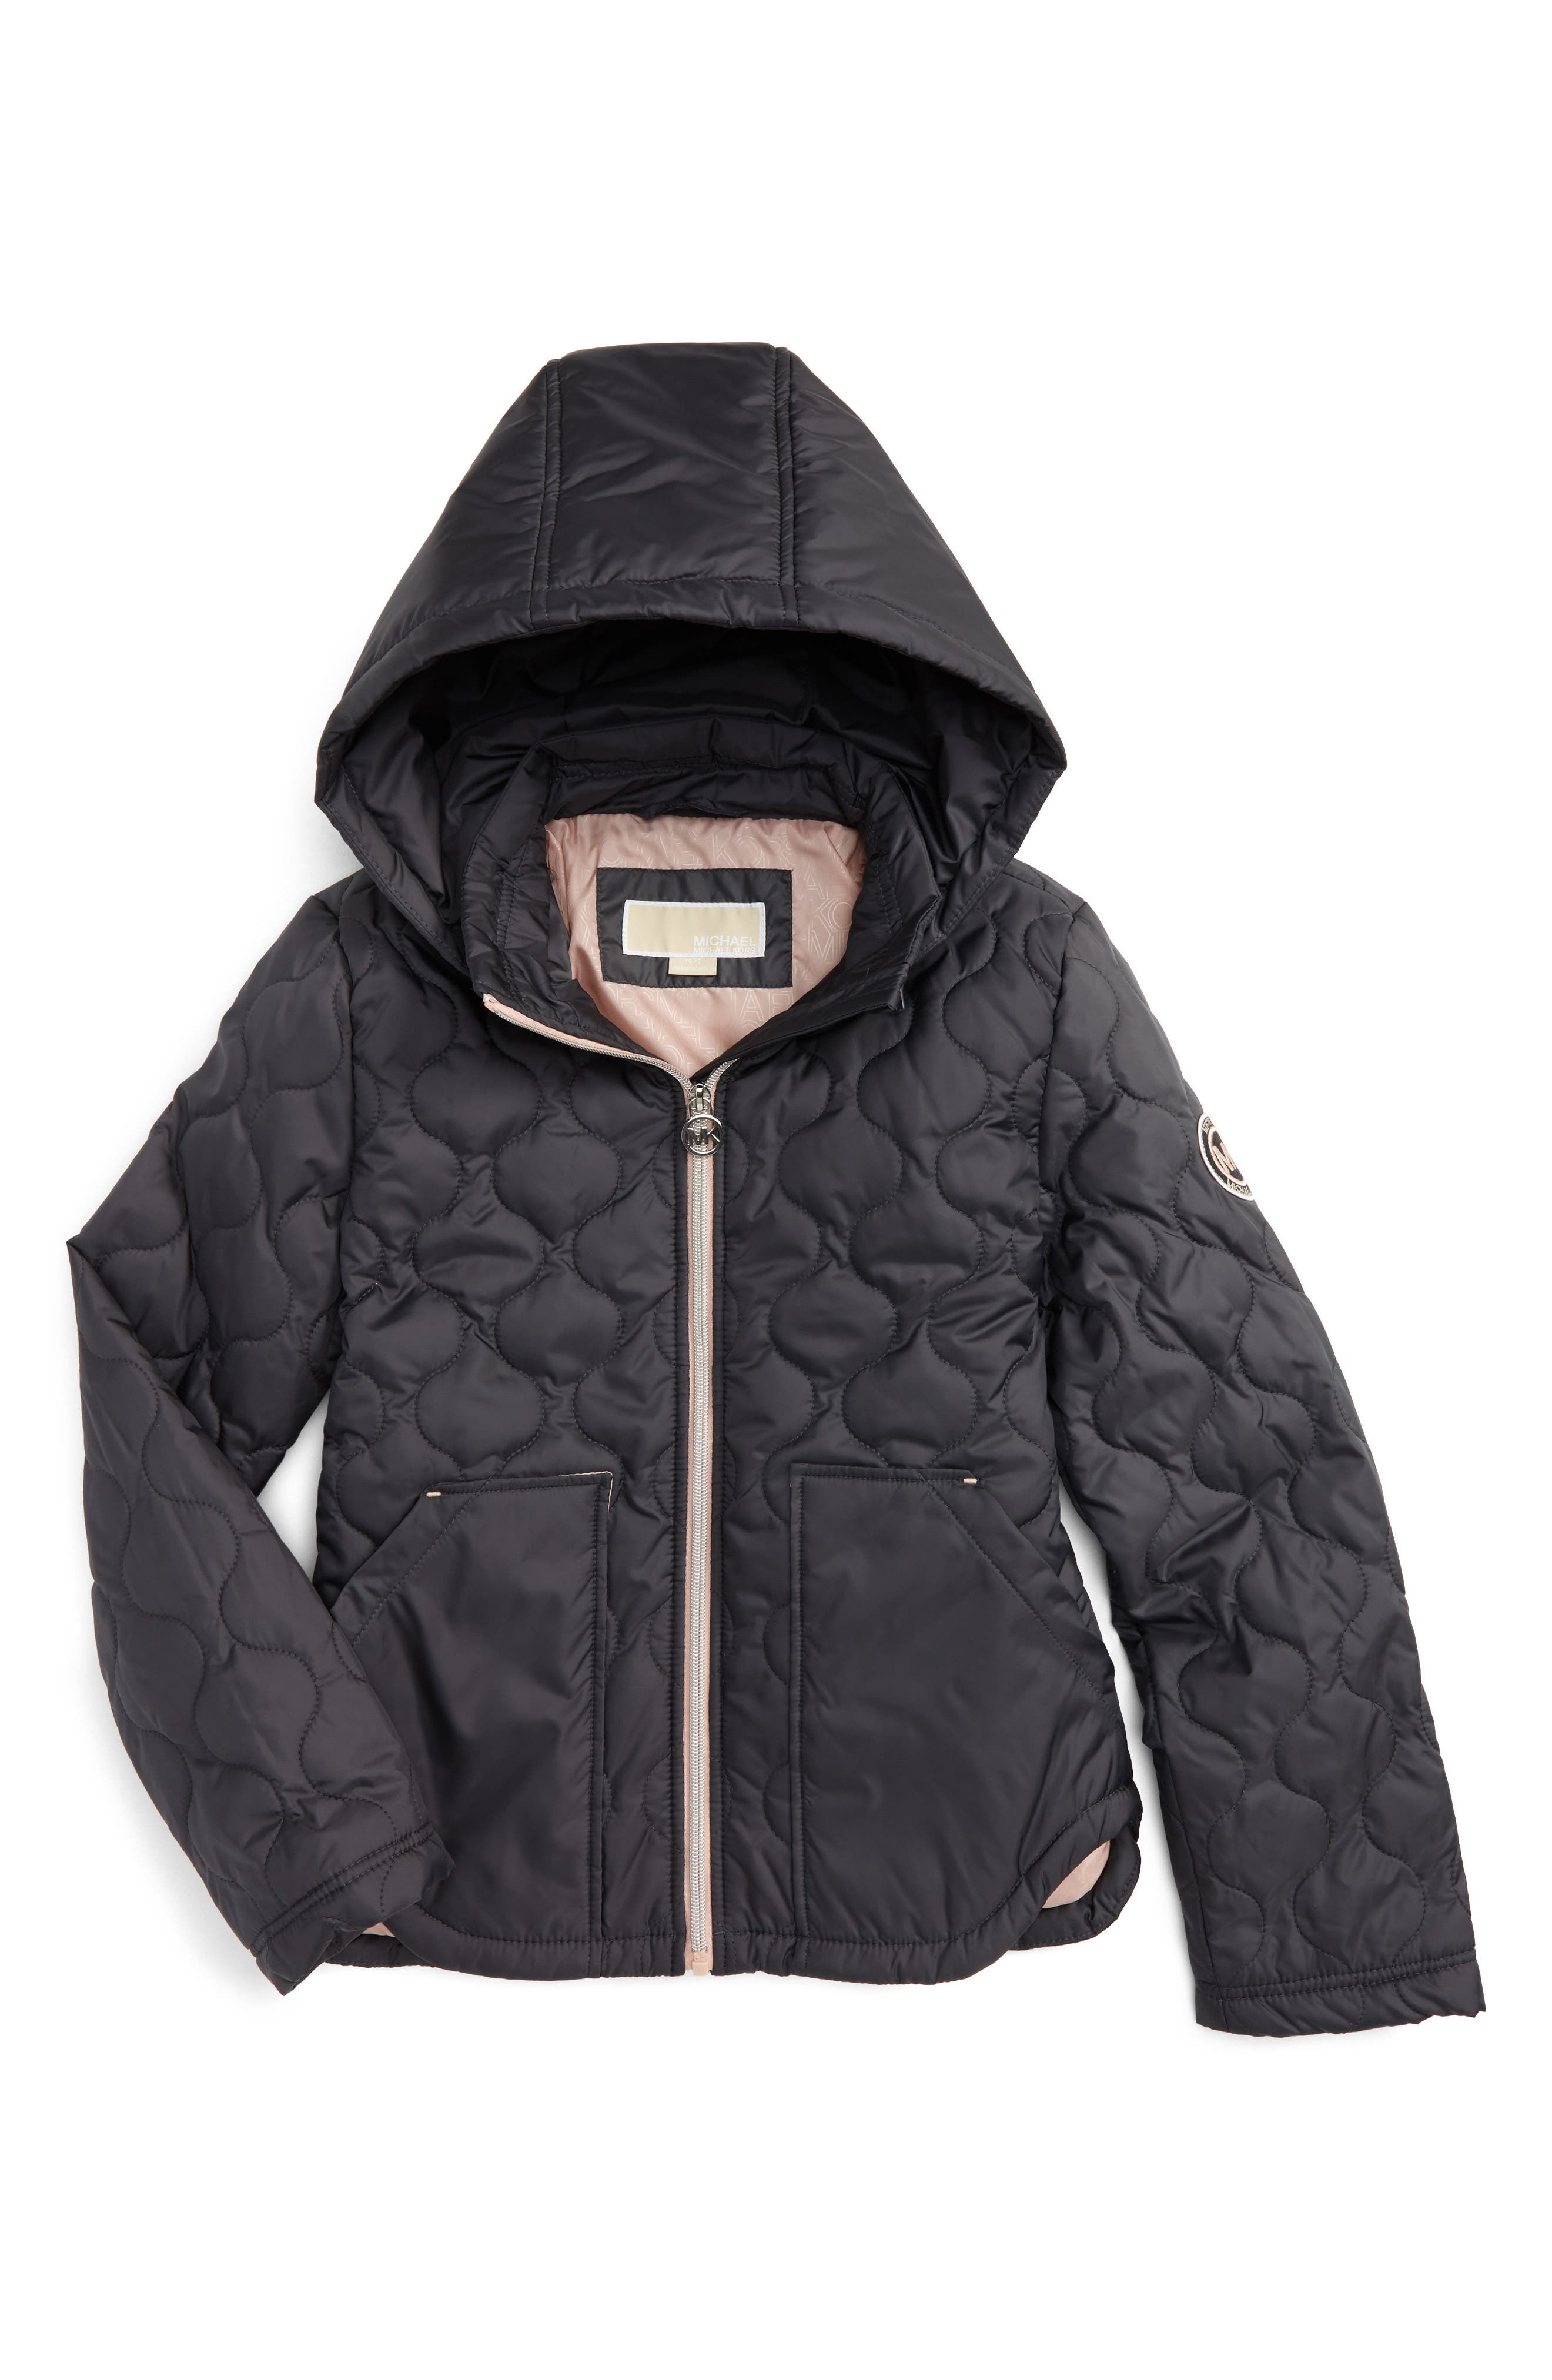 MICHAEL Michael Kors Quilted Hooded Jacket,                             Main thumbnail 1, color,                             027